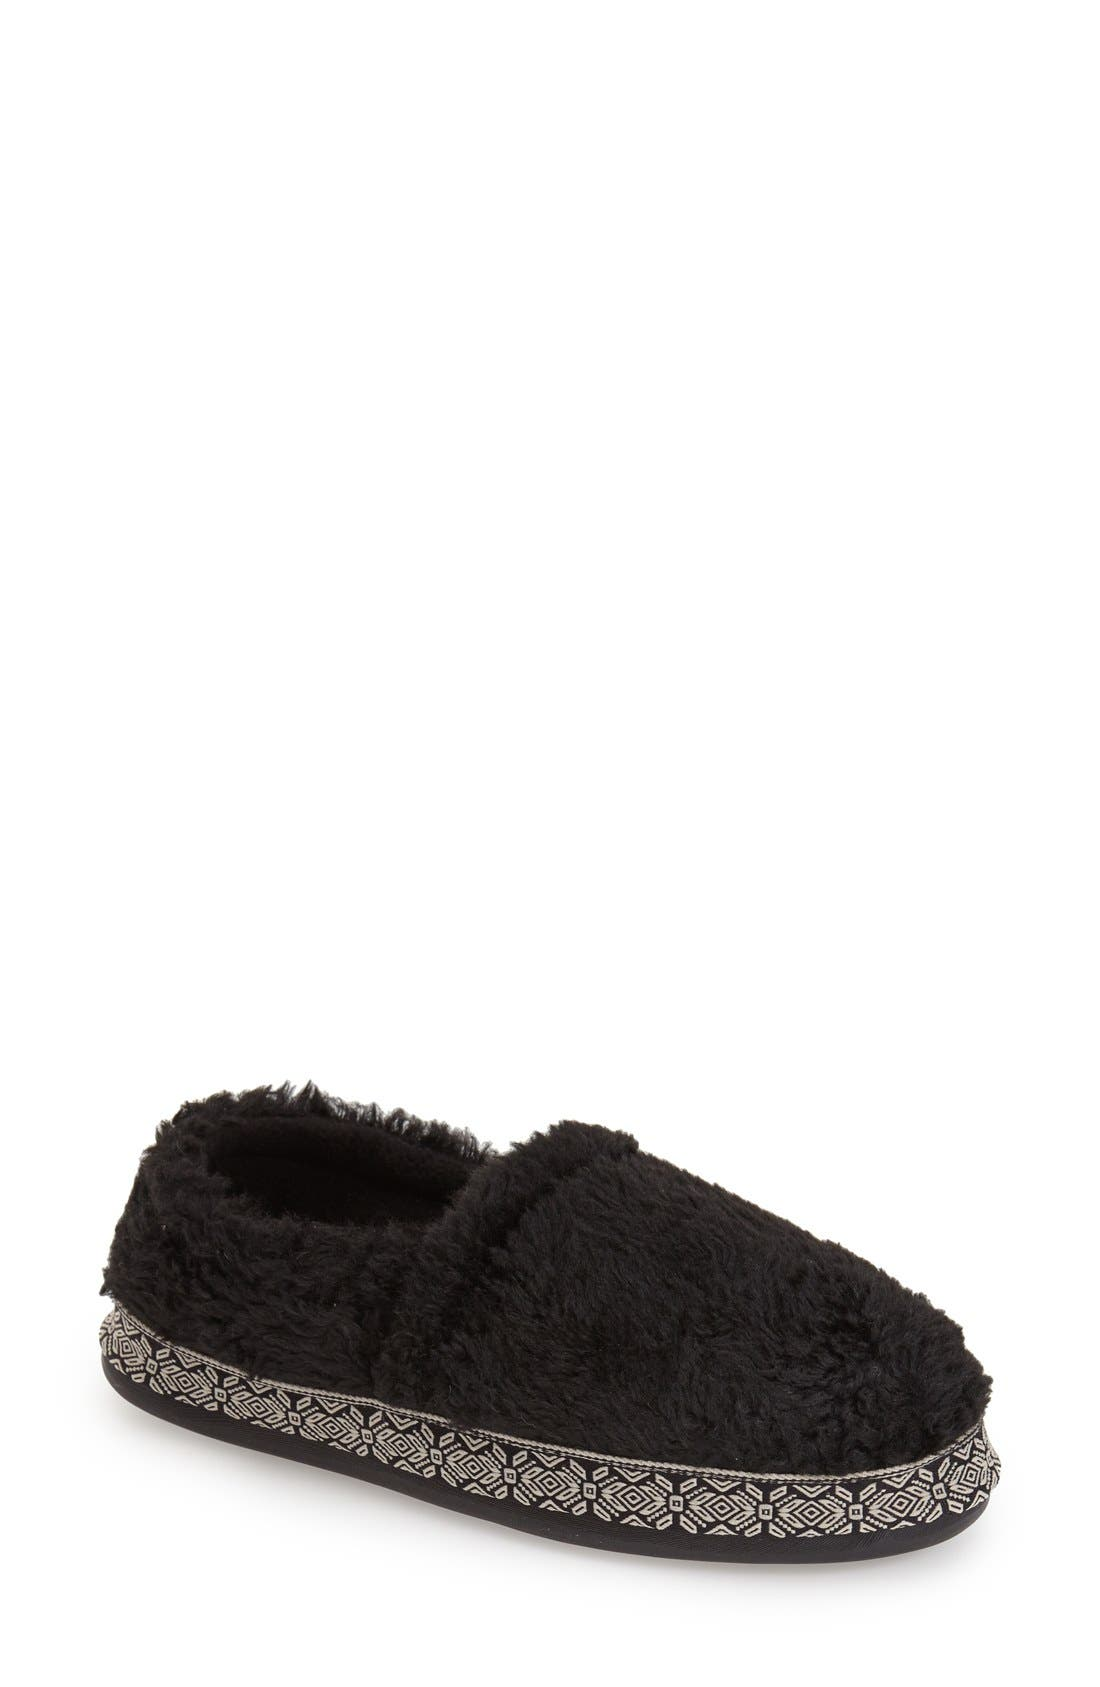 Main Image - Woolrich John Rich 'Whitecap' Slipper (Women)